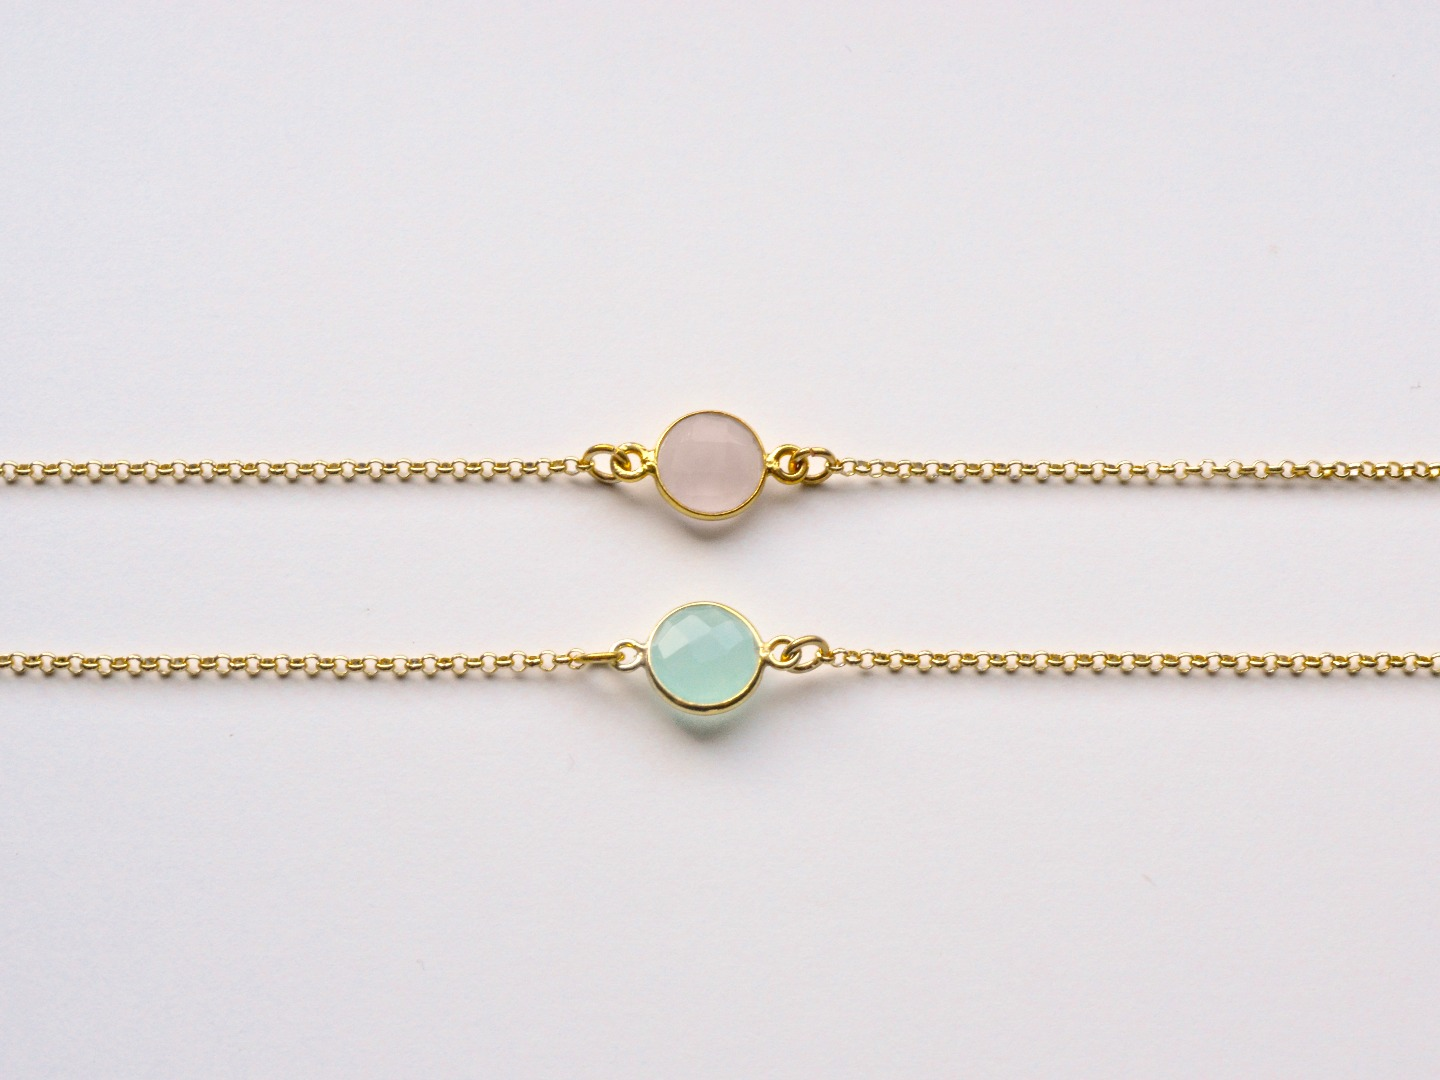 New in Aqua Chalcedon Armband vergoldet